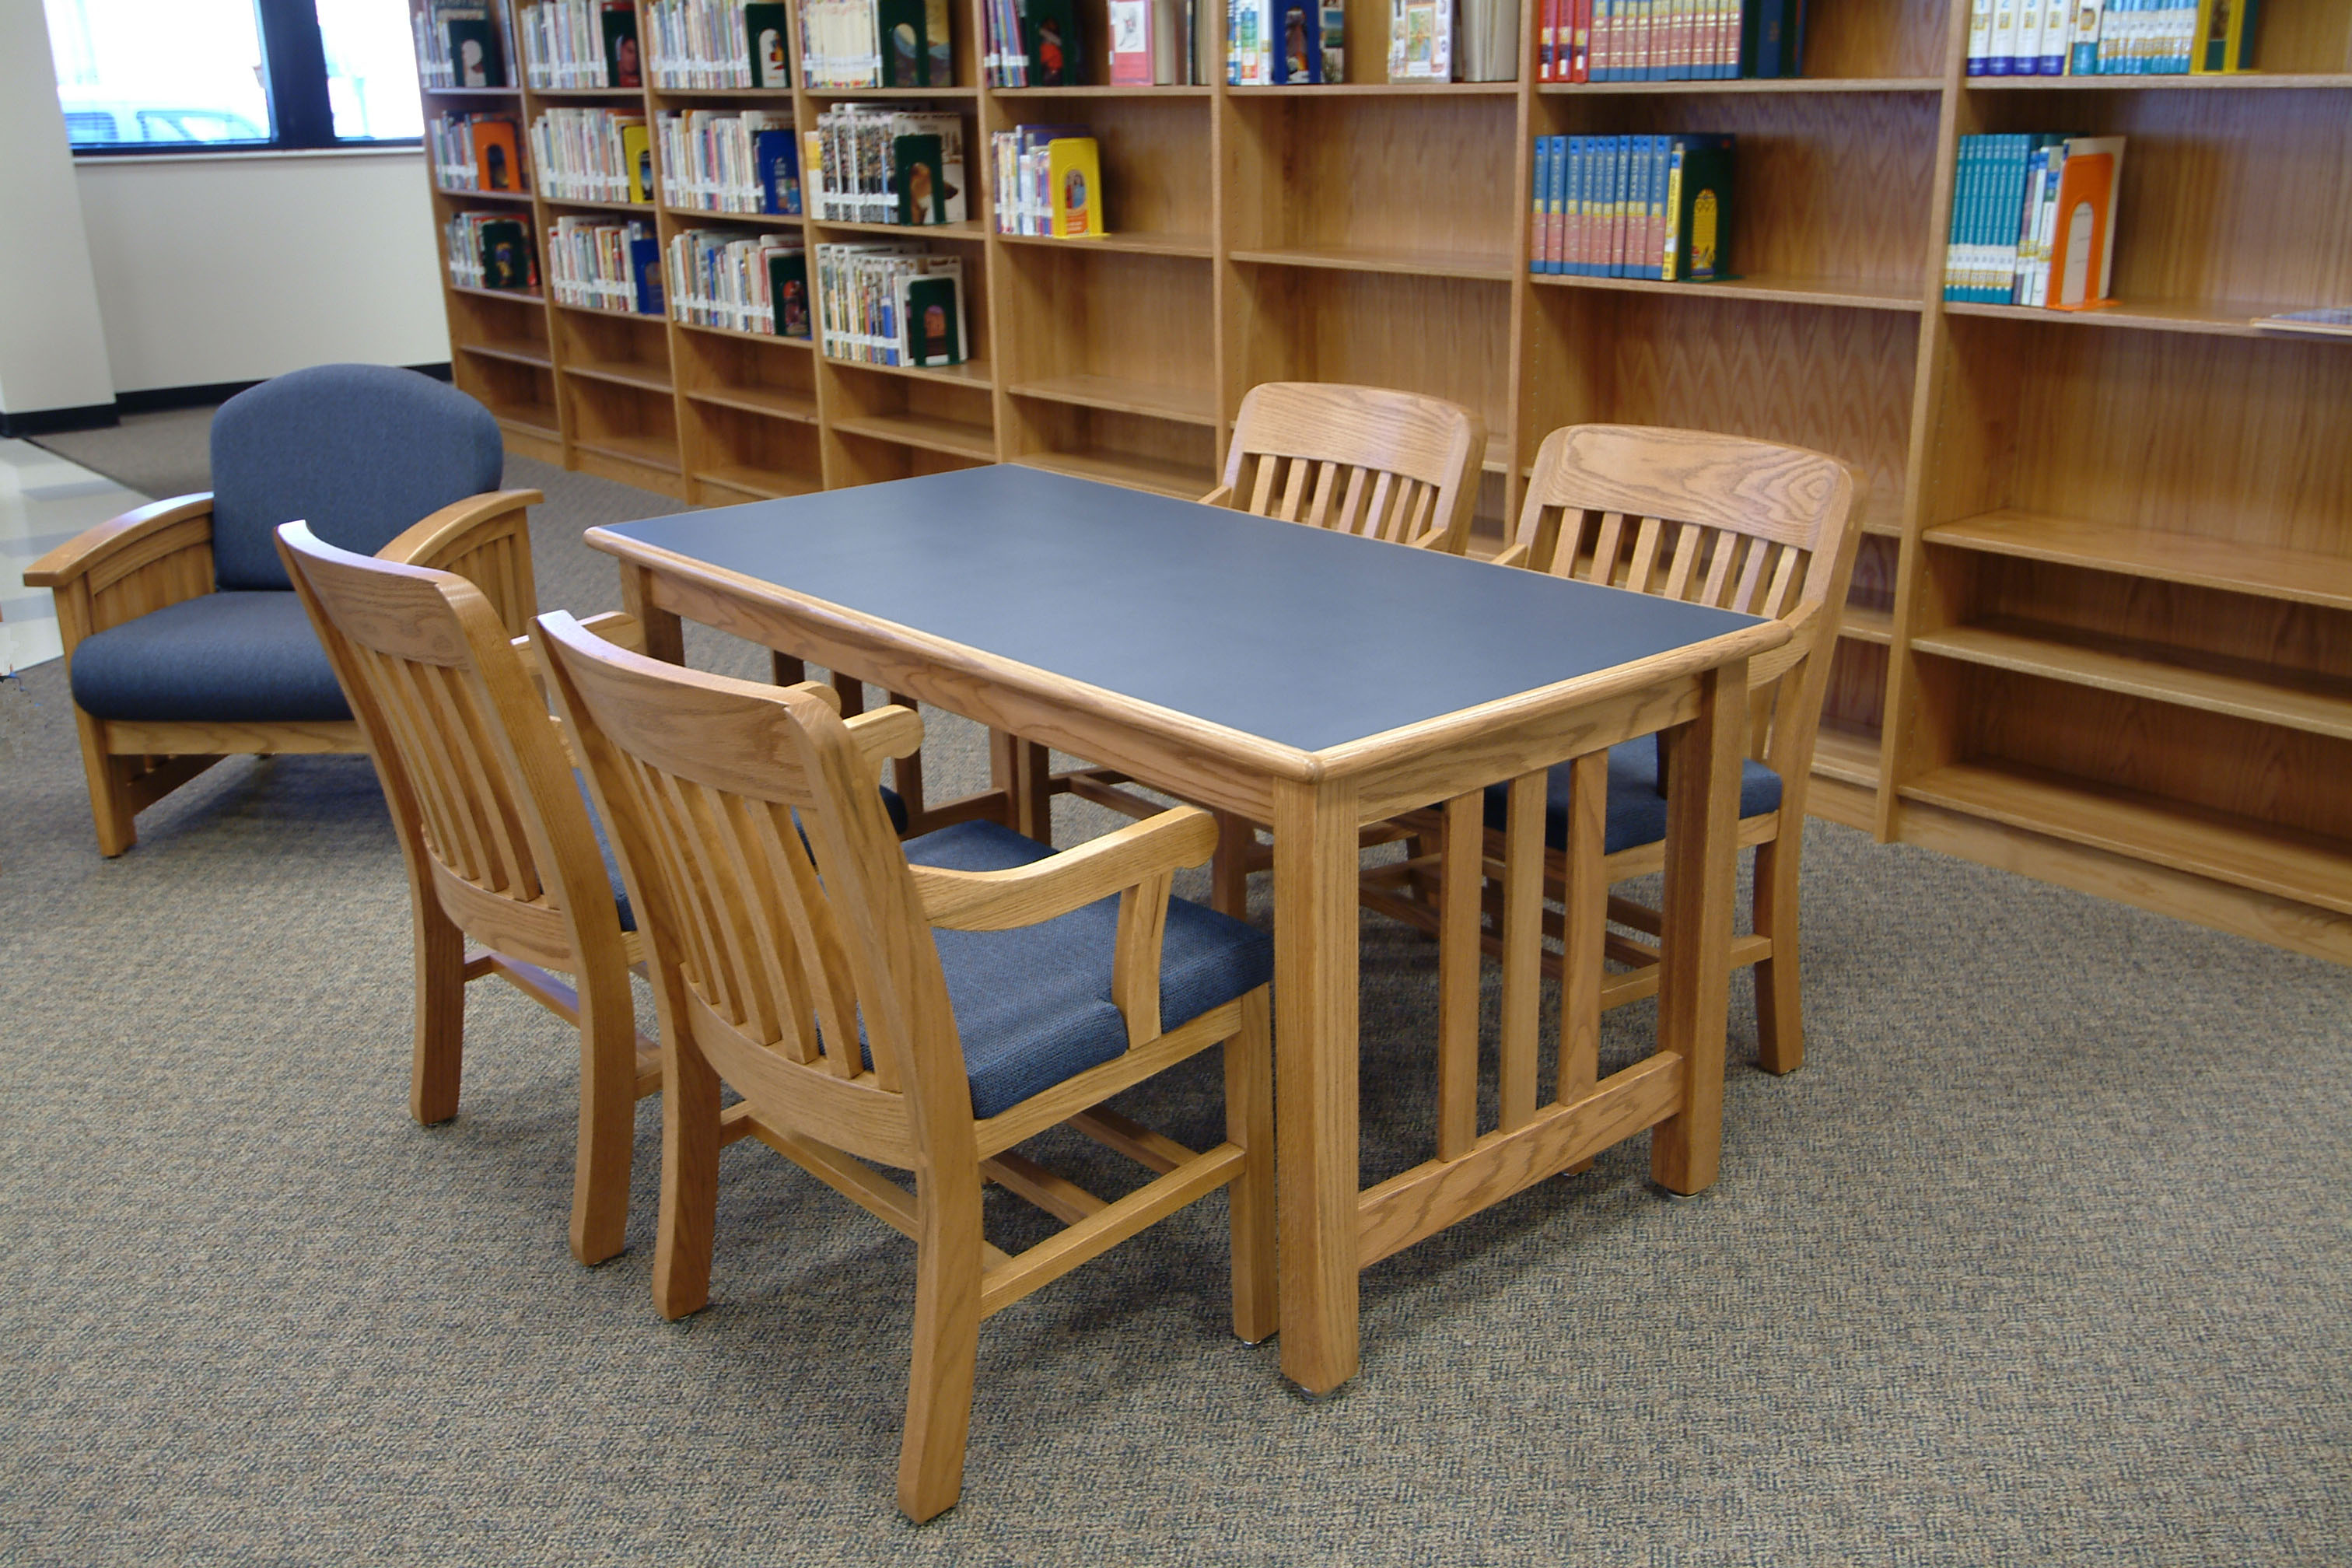 Tesco Wood Library Furniture on New York State Contract. Longo Schools   Blog Archive   Tesco Wood Library Furniture on New